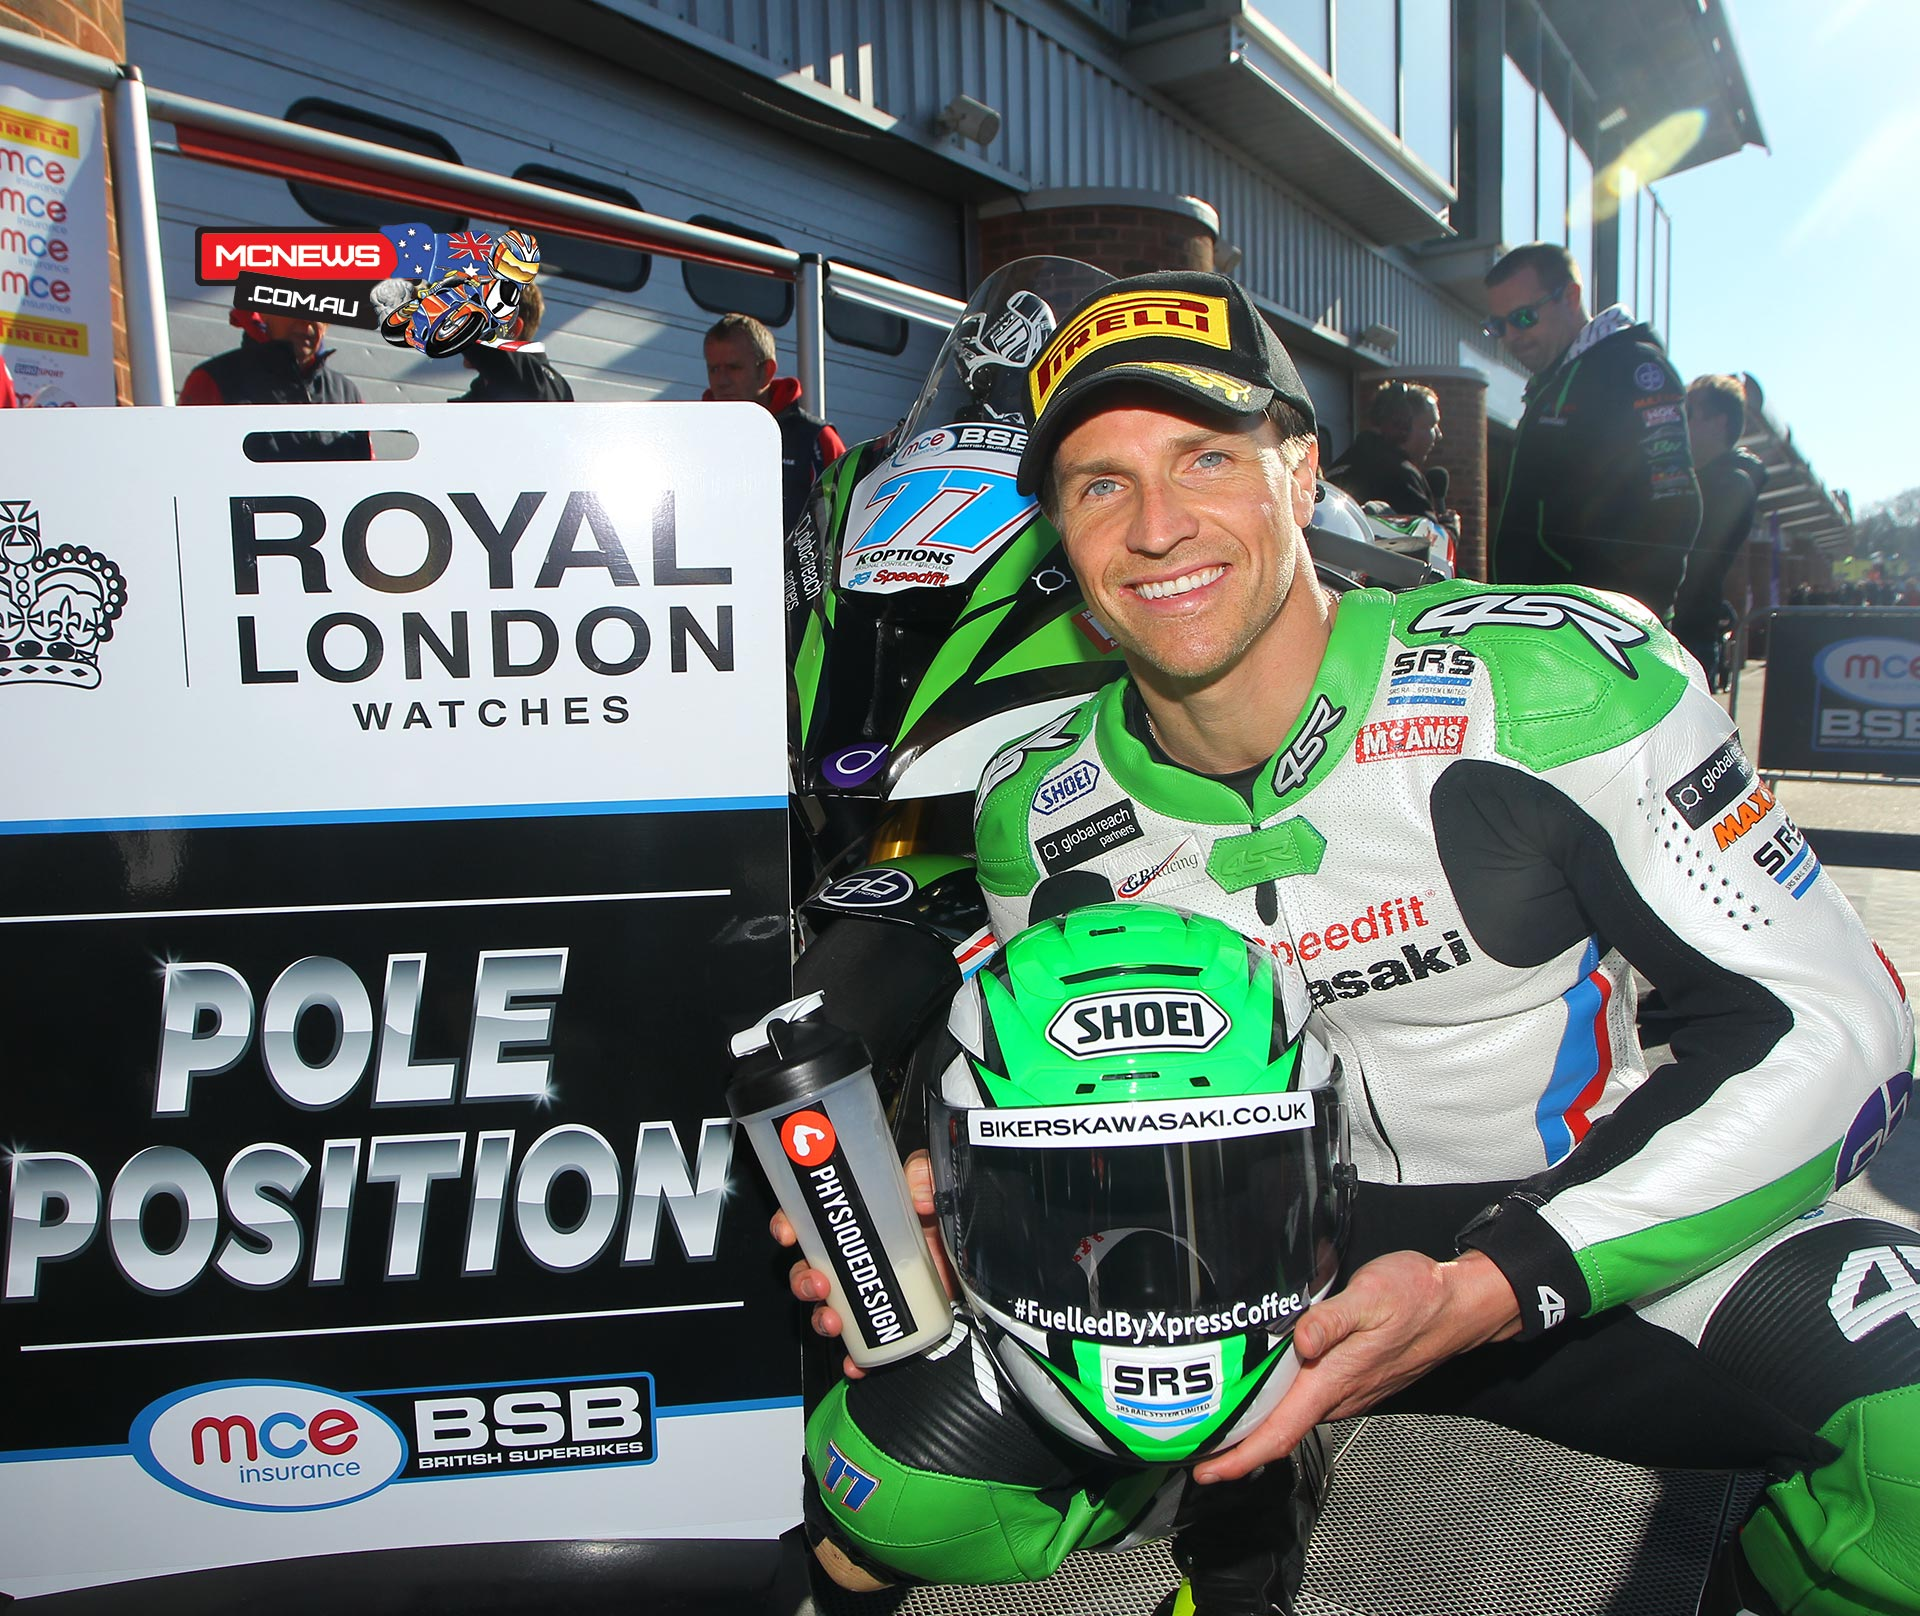 James Ellison claimed his first pole position of the 2015 MCE Insurance British Superbike Championship season by pushing under the Brands Hatch Indy circuit lap record